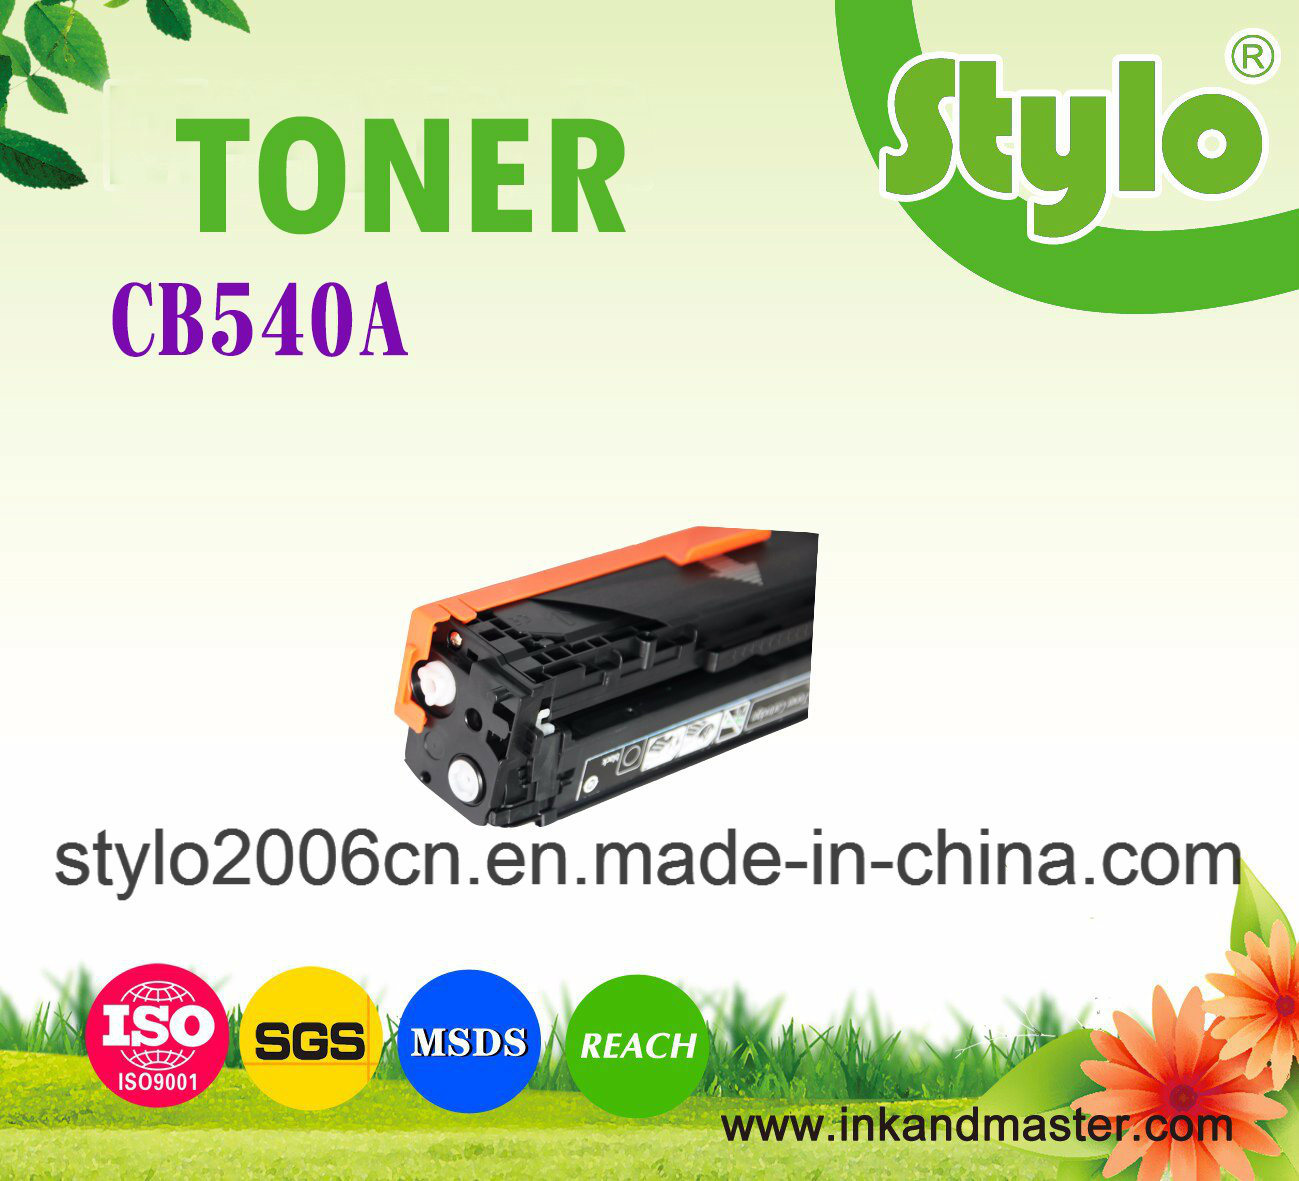 CB540A Color Toner Cartridge for HP 1215/1515/Cm1312/1300/Cp1210